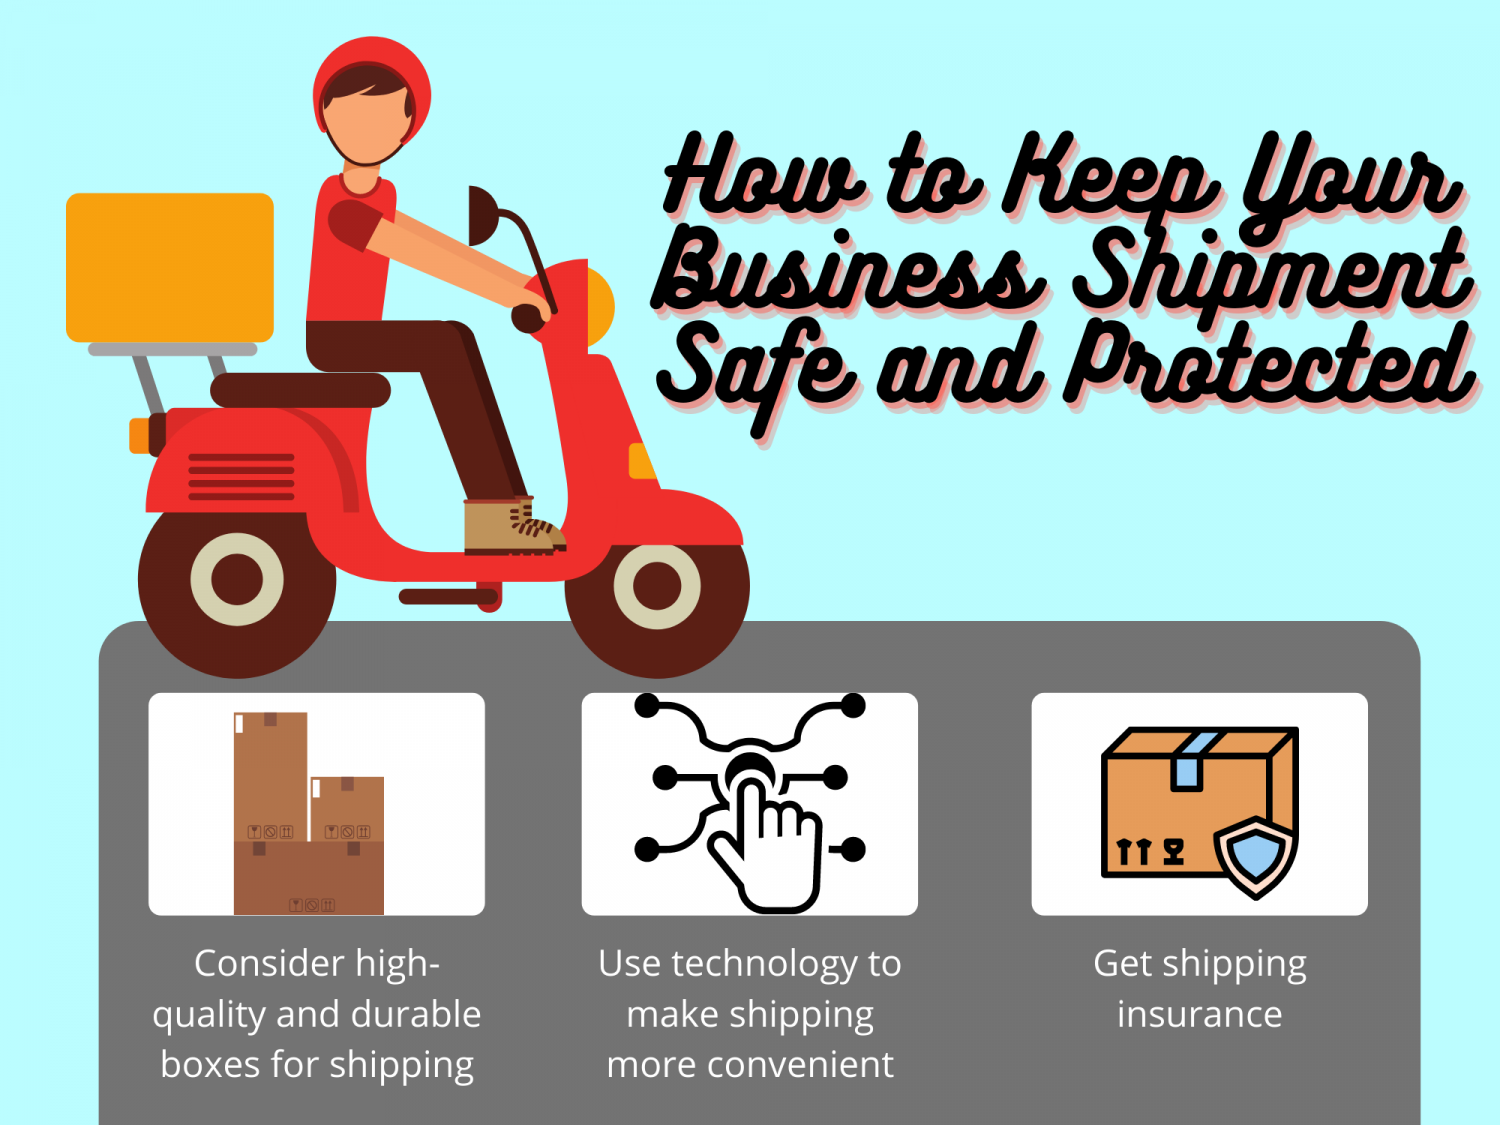 How to Keep Your Shipment More Safe & Secured Infographic